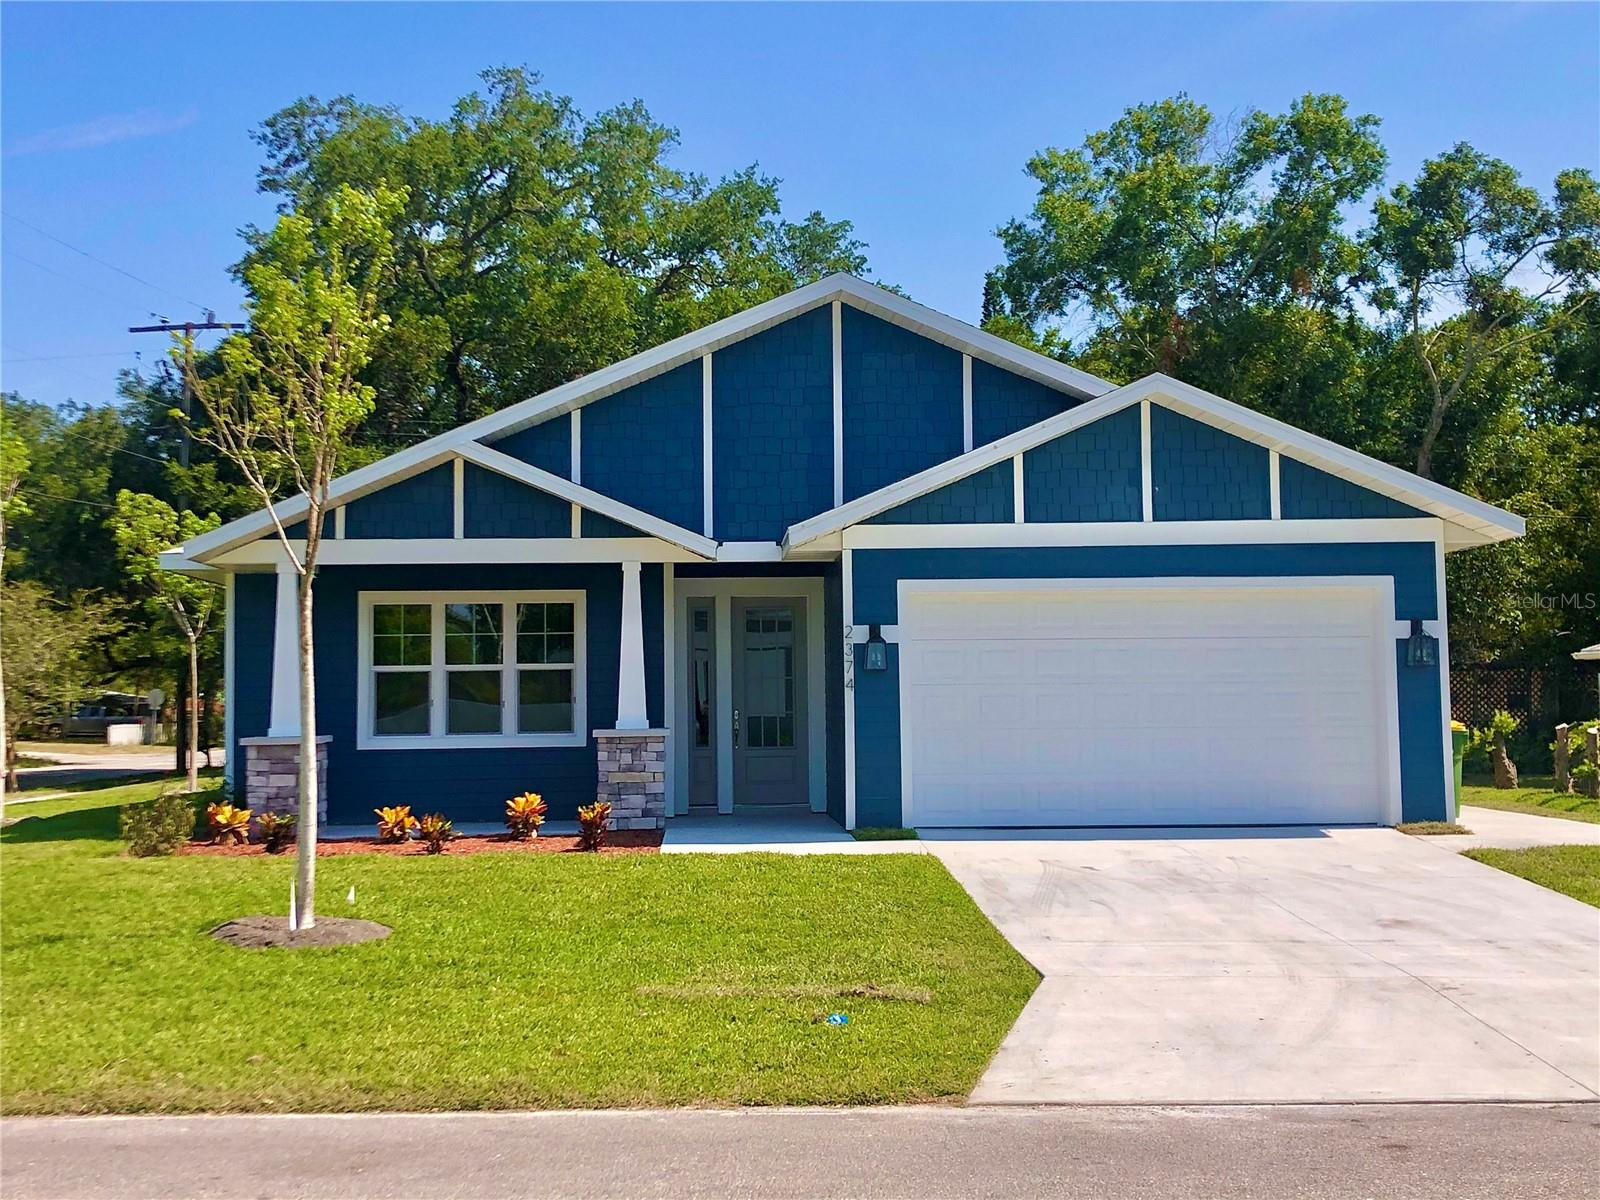 New Attachment - Single Family Home for sale at 2374 Prospect St, Sarasota, FL 34239 - MLS Number is A4467572